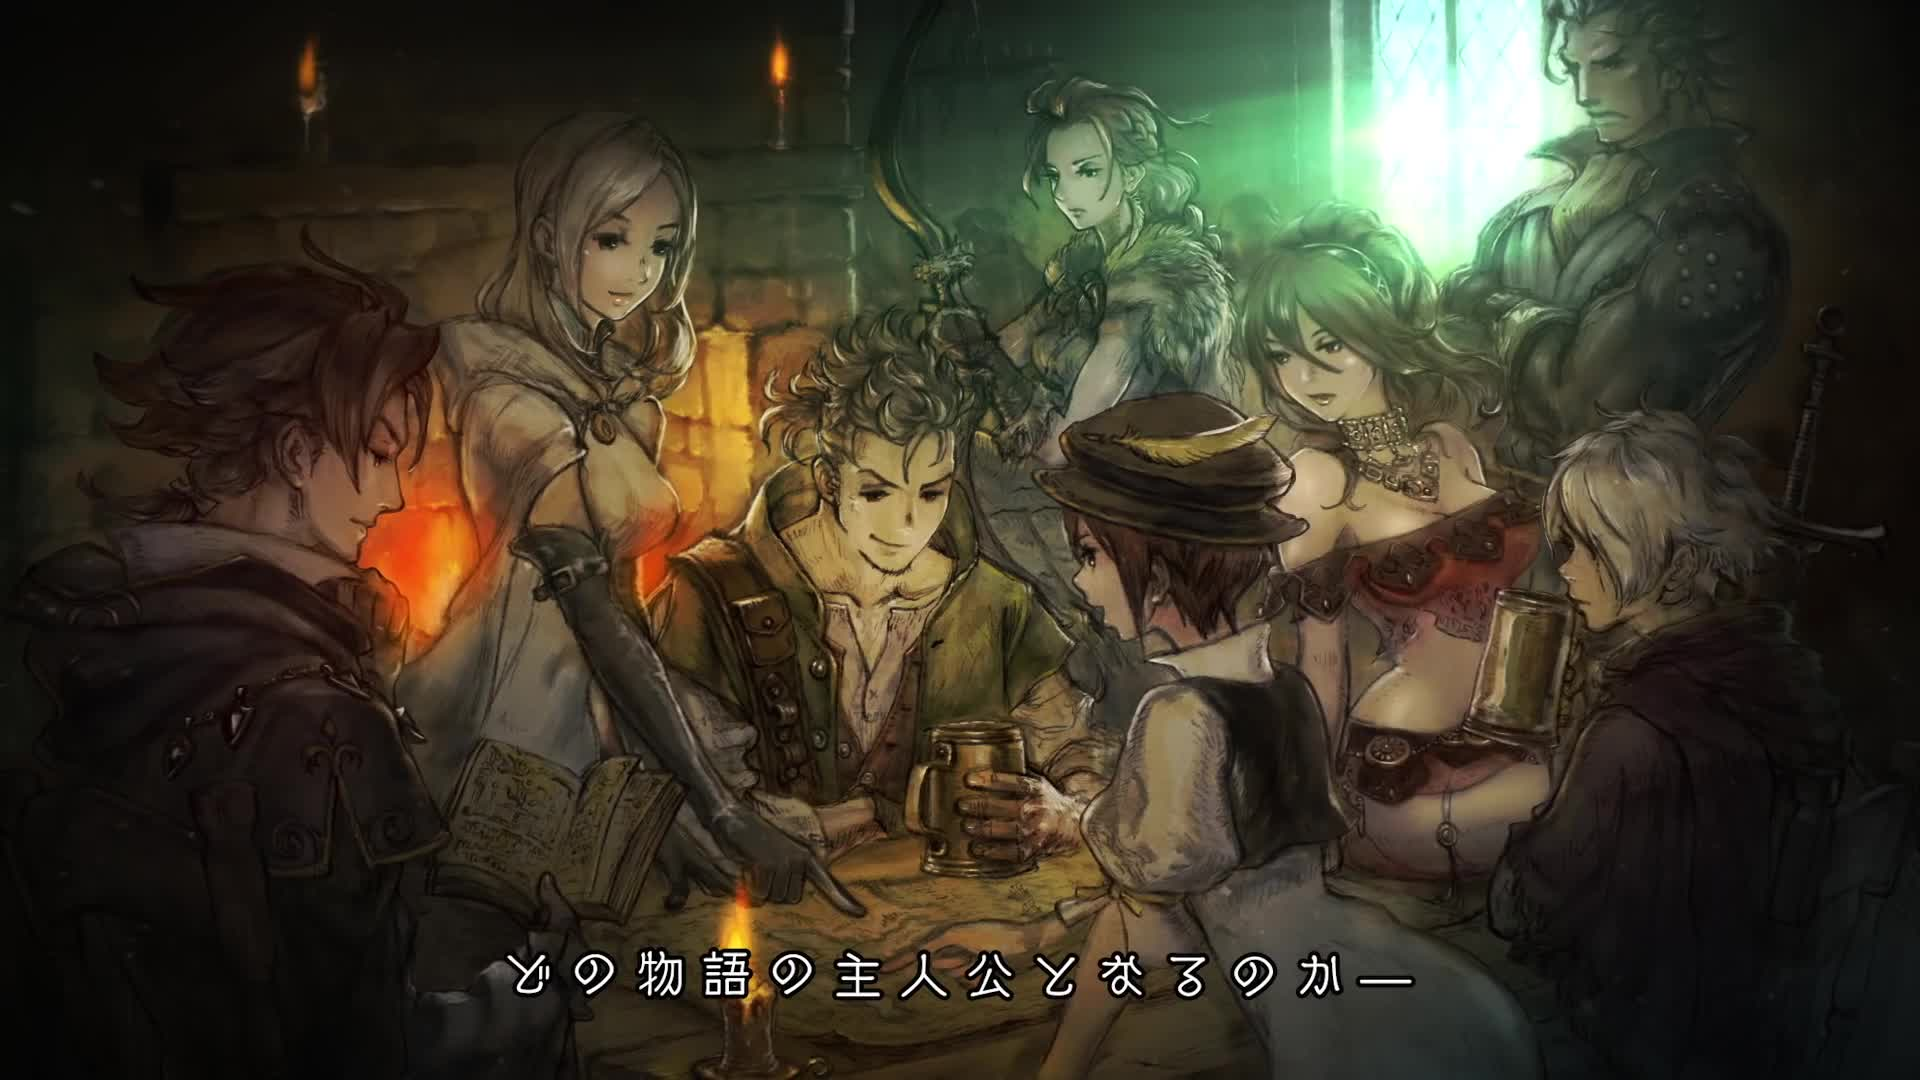 Project Octopath Traveler - Switch teaser